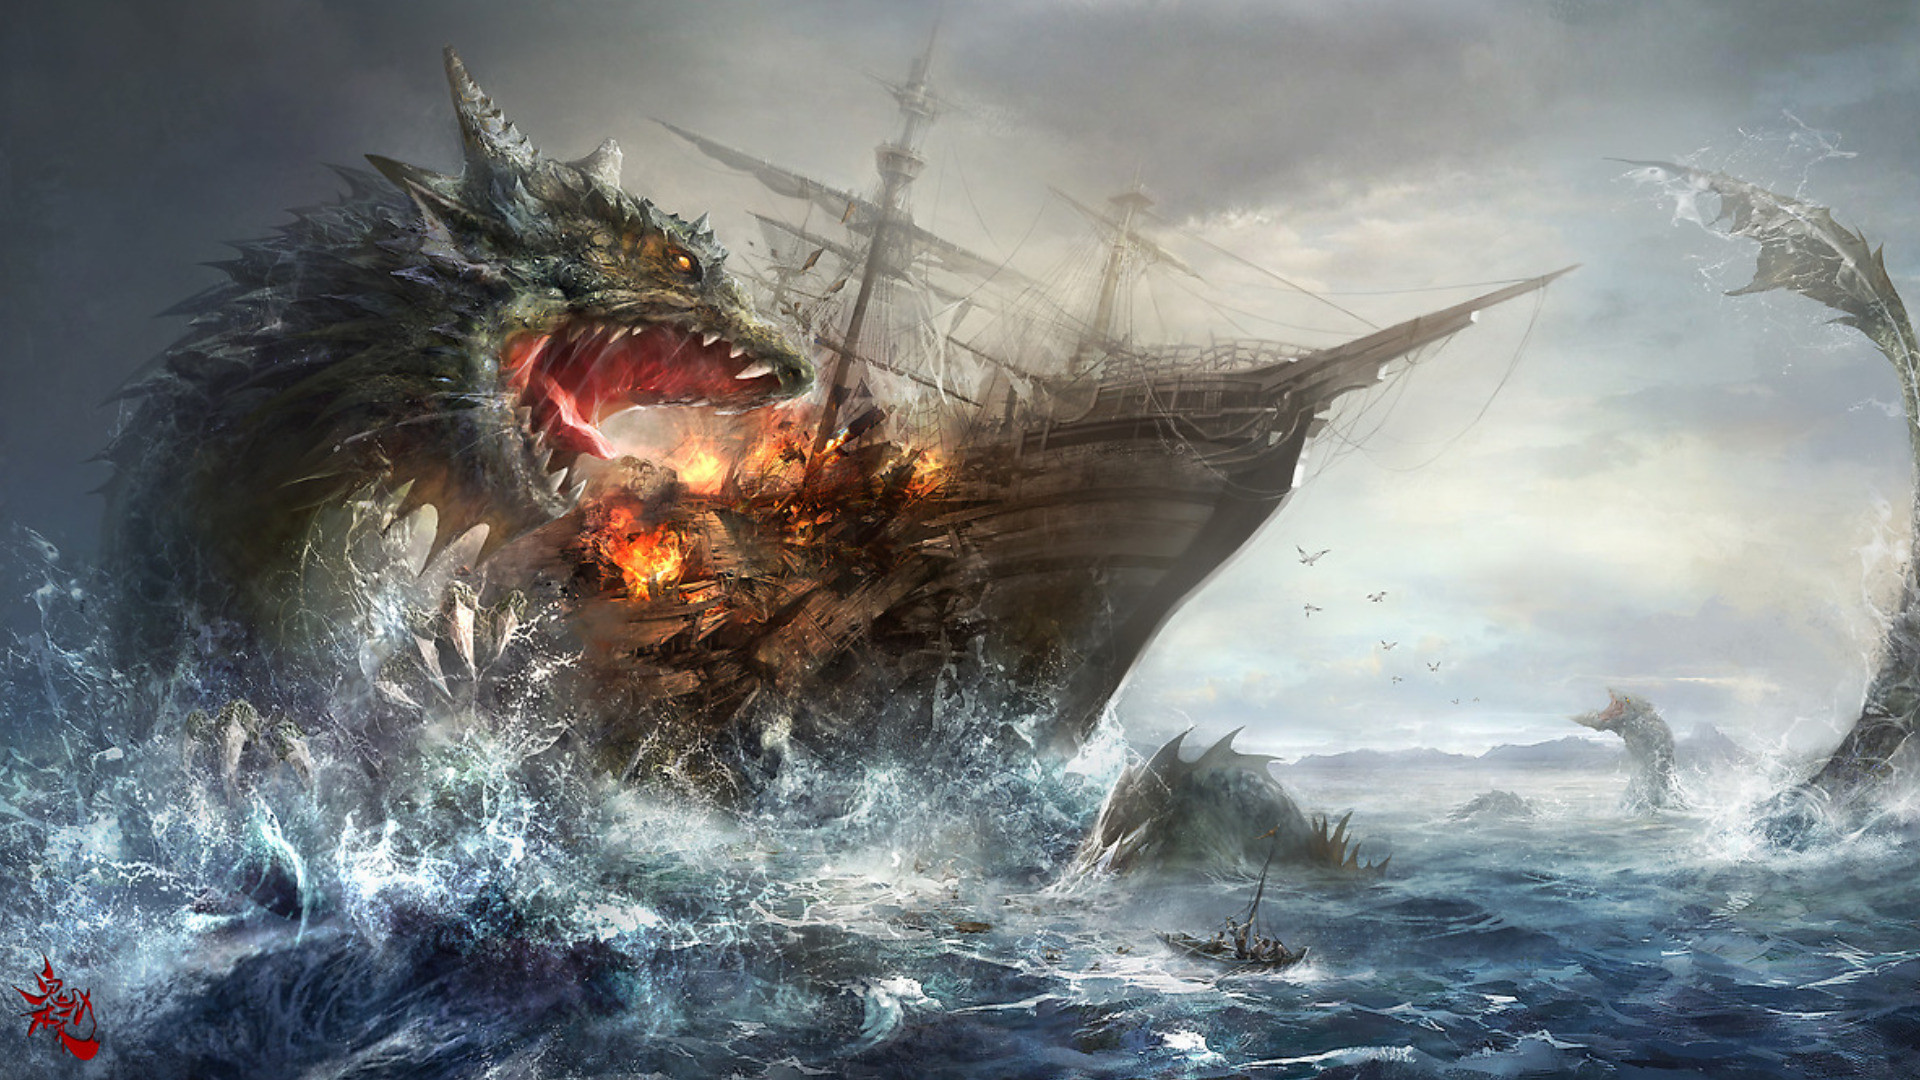 Scary Sea Monster Wallpapers